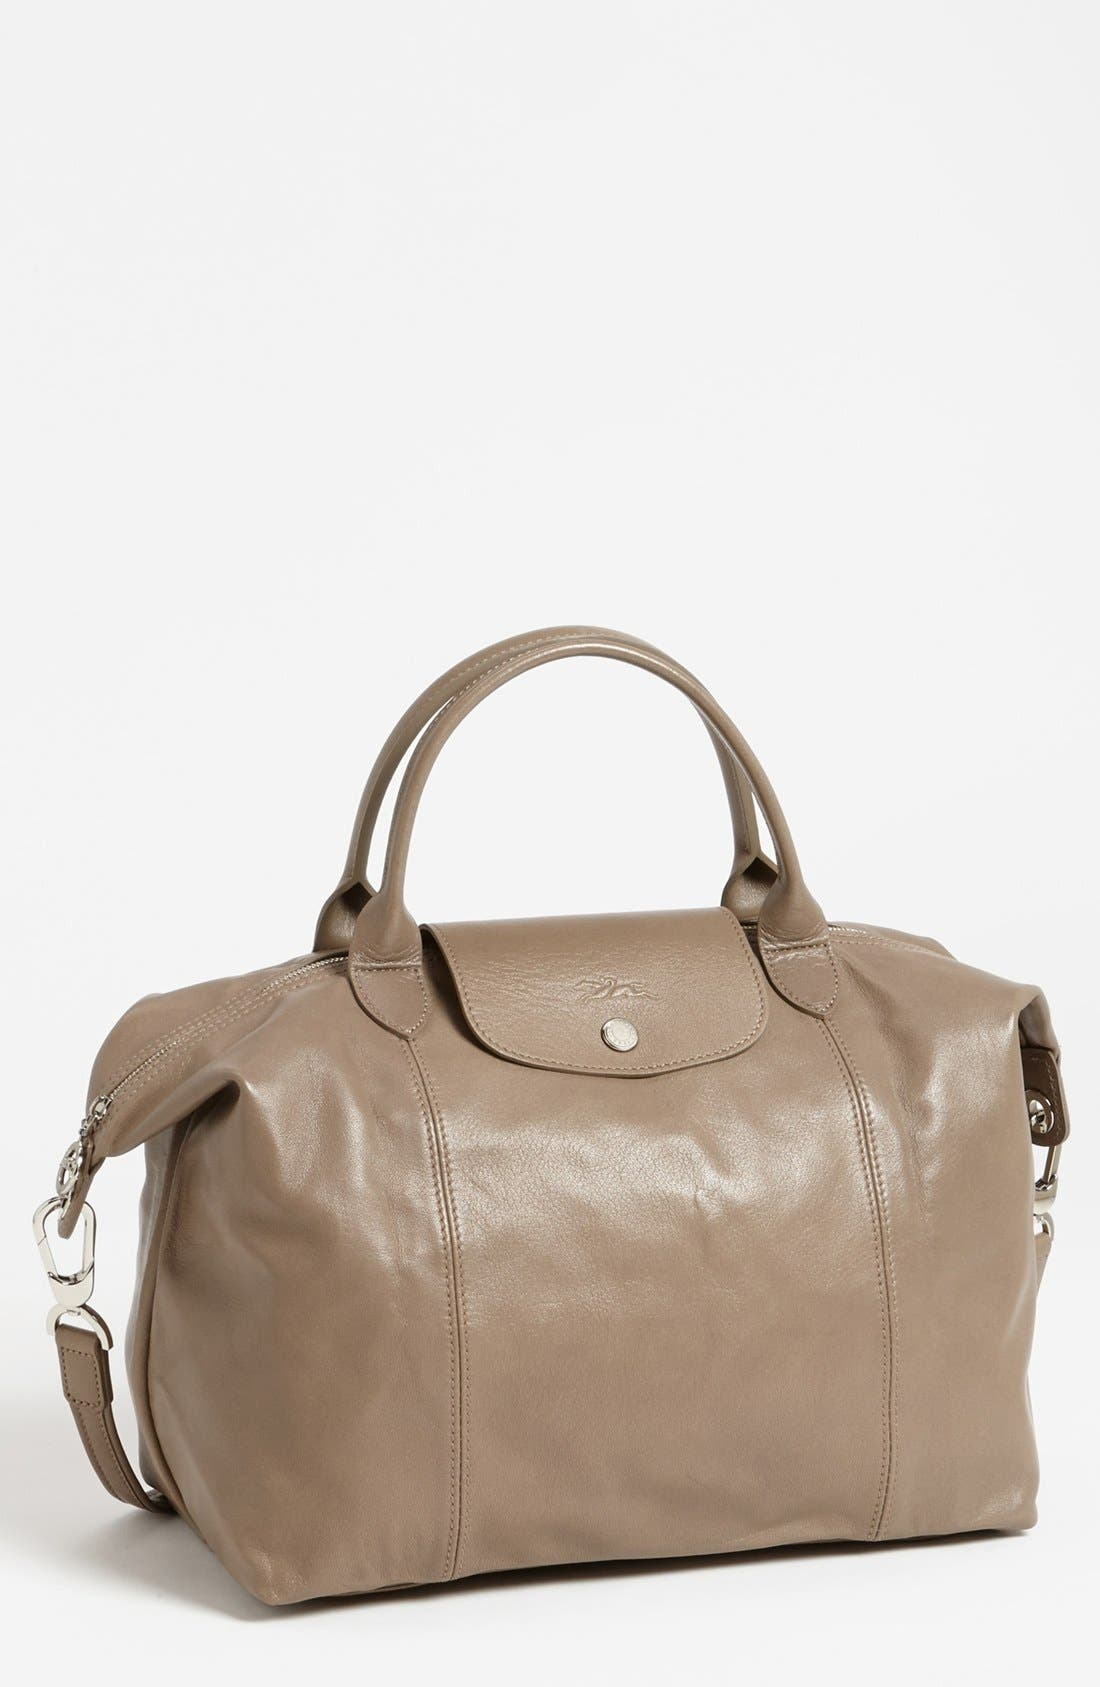 Medium 'Le Pliage Cuir' Leather Top Handle Tote,                             Main thumbnail 12, color,